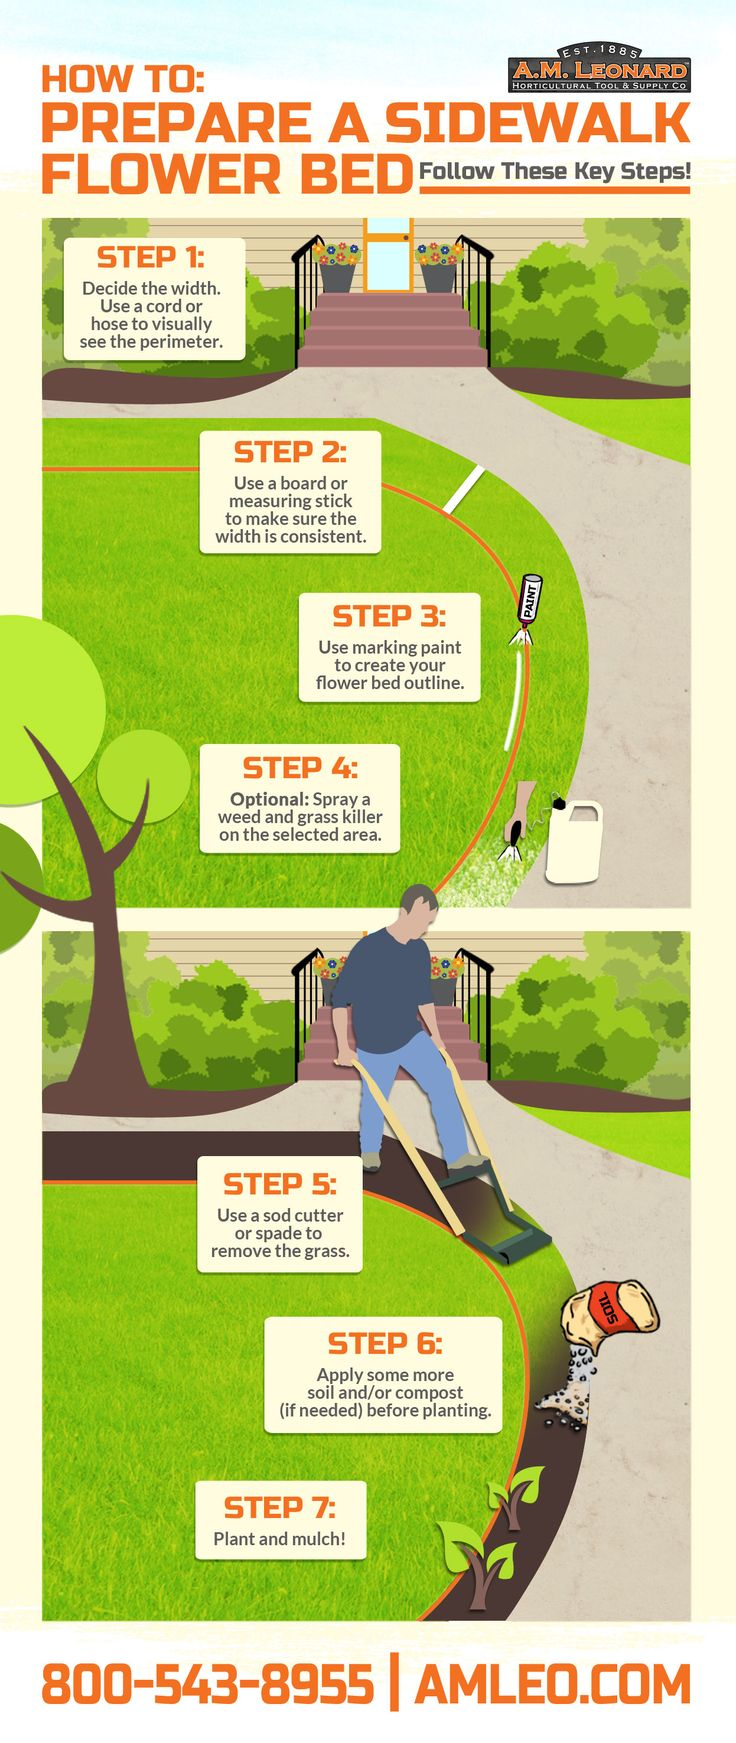 Sidewalk Flowerbeds: Planning the details of a landscaping project is the first step you should take before beginning. If you have been considering adding a flowerbed along a sidewalk, here are key steps to know before getting started. Also, be sure to read the label of any weed and grass killer before using it, and use plants that will do well in your climate.